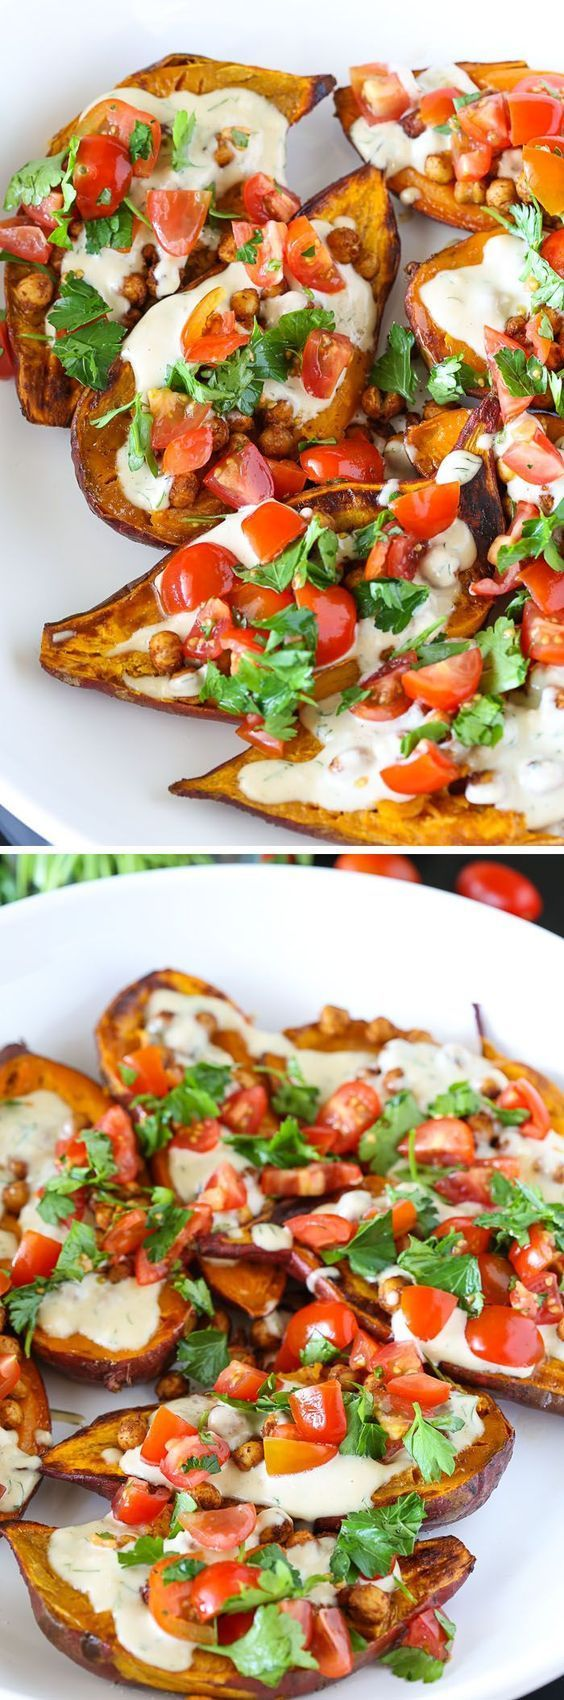 Mediterranean Baked Sweet Potato Recipe